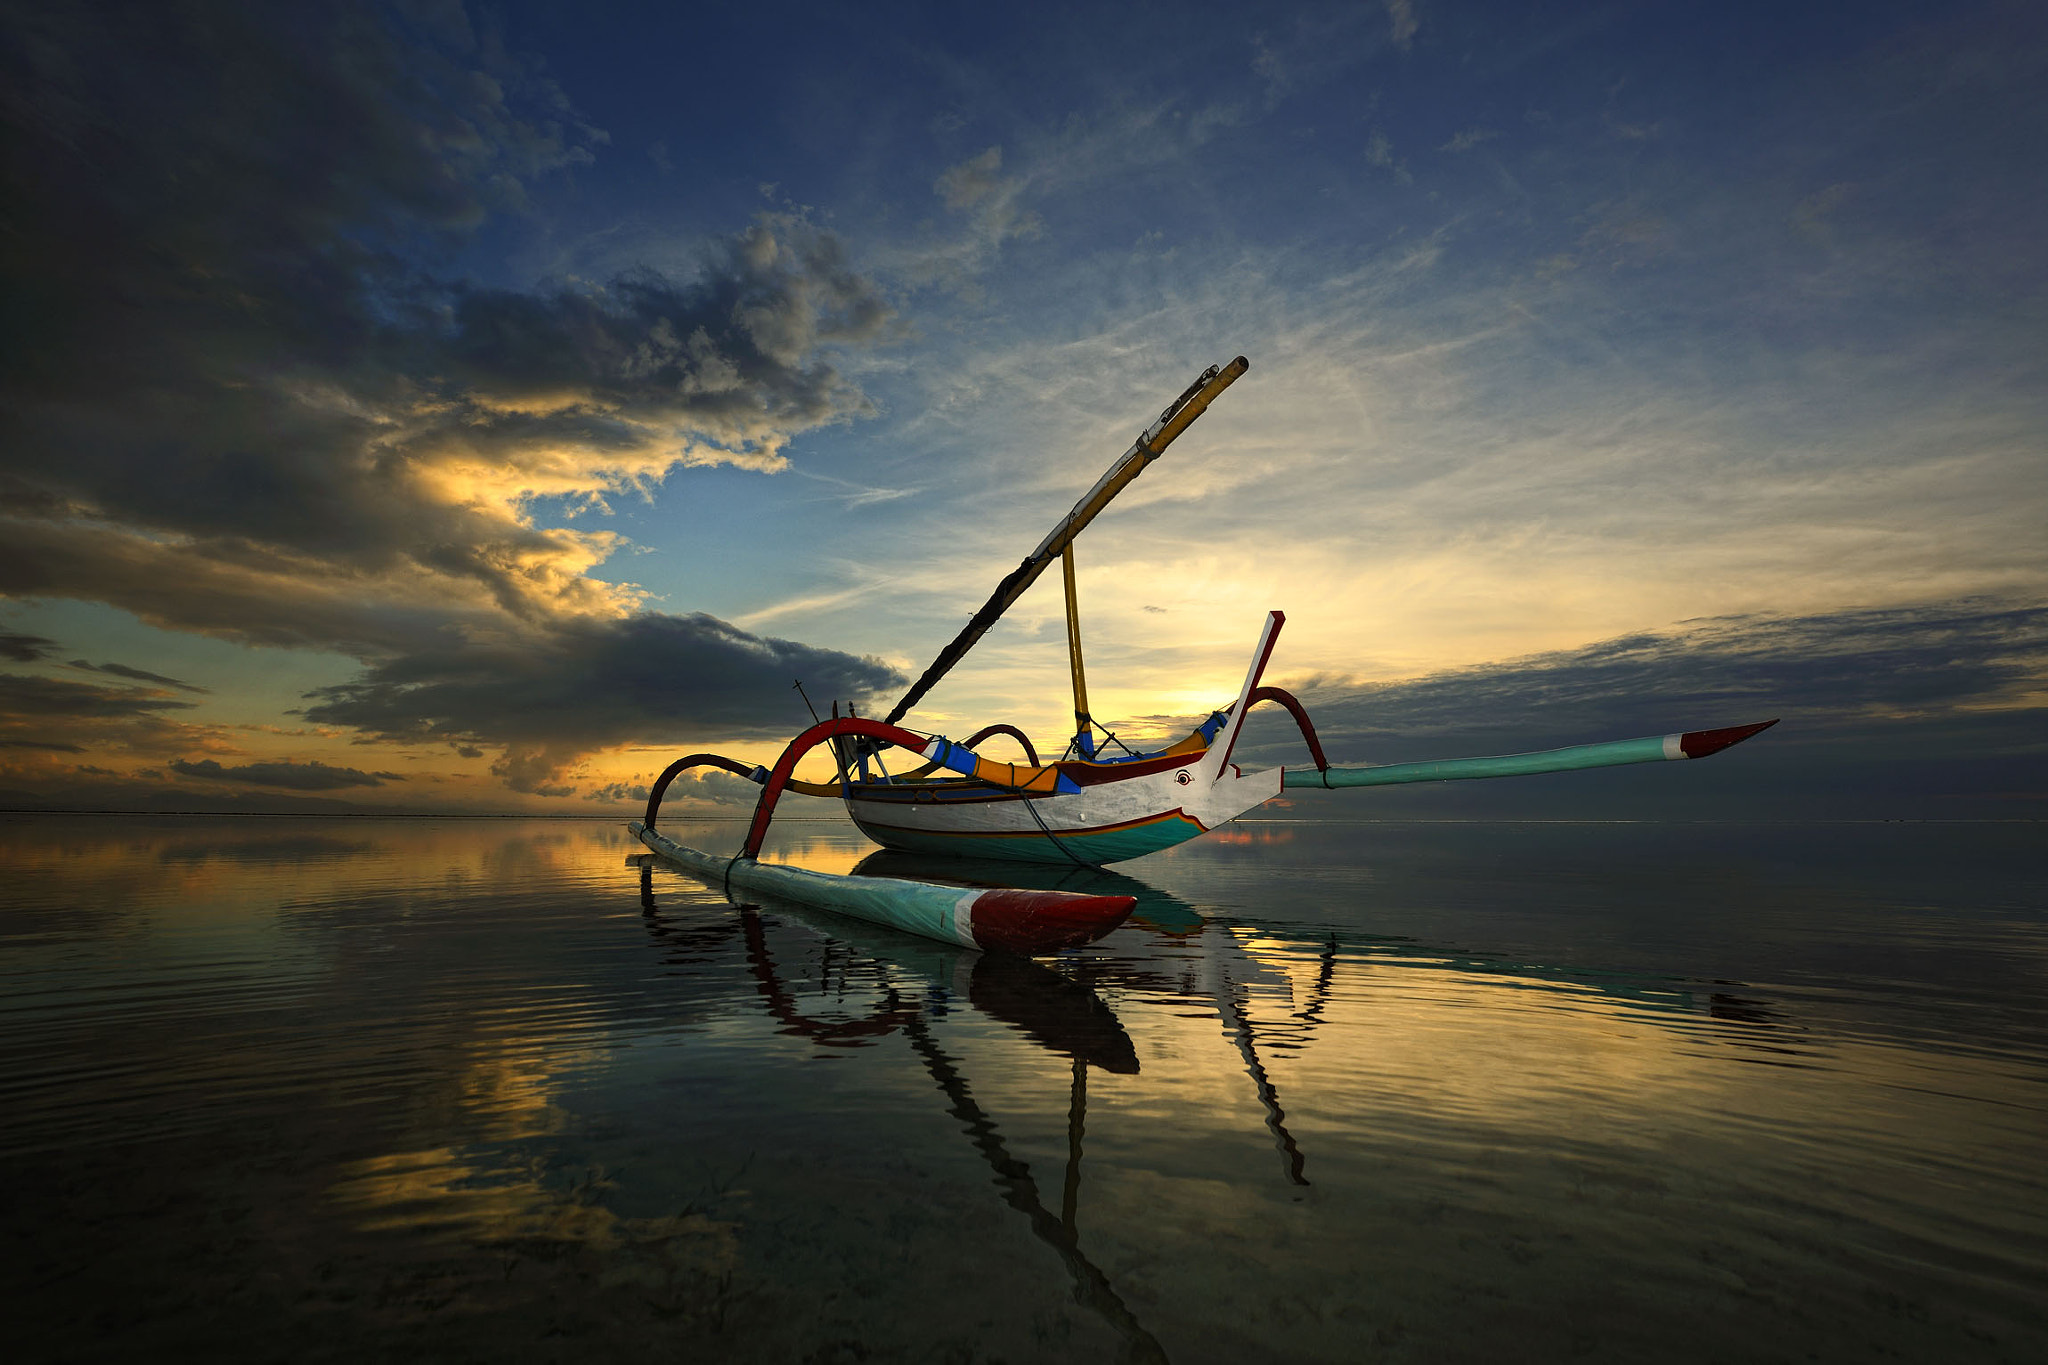 Photograph Bali - Sanur Beach by toonman blchin on 500px